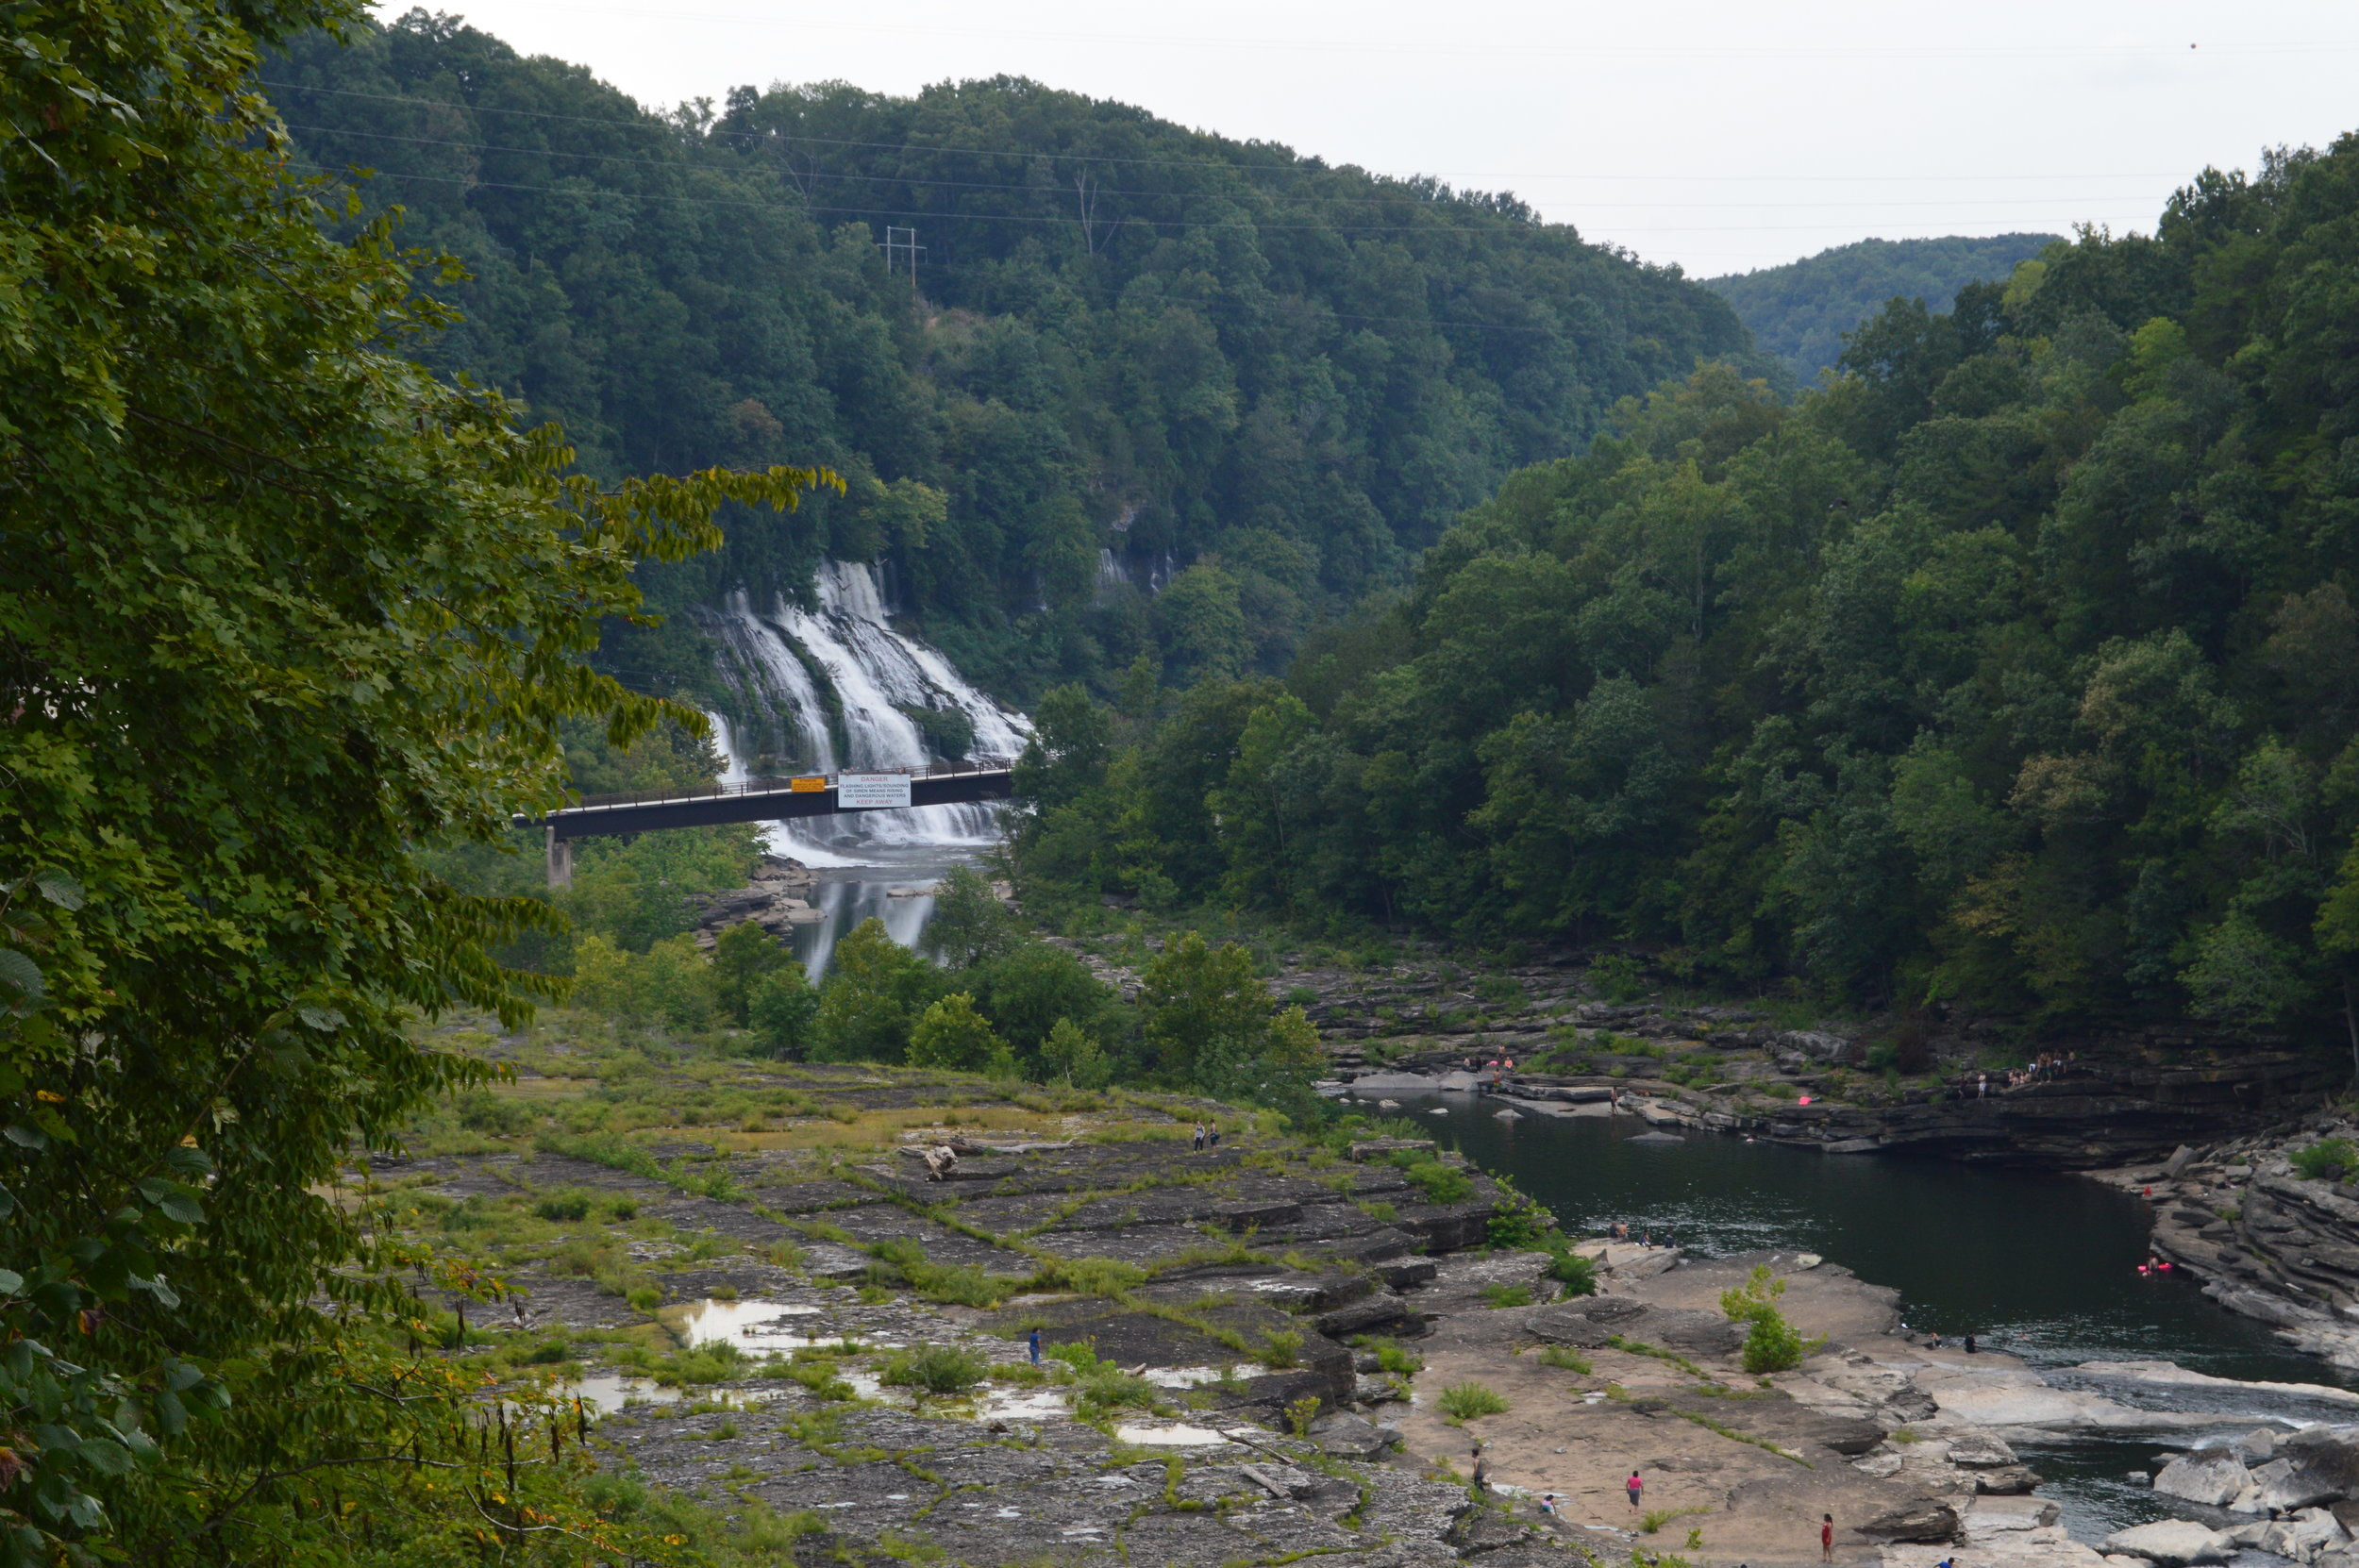 Twin Falls in the Caney River Gorge can be viewed from the overlook near Great Falls, but access to it requires a trip outside of Rock Island State Park and down Powerhouse Road.